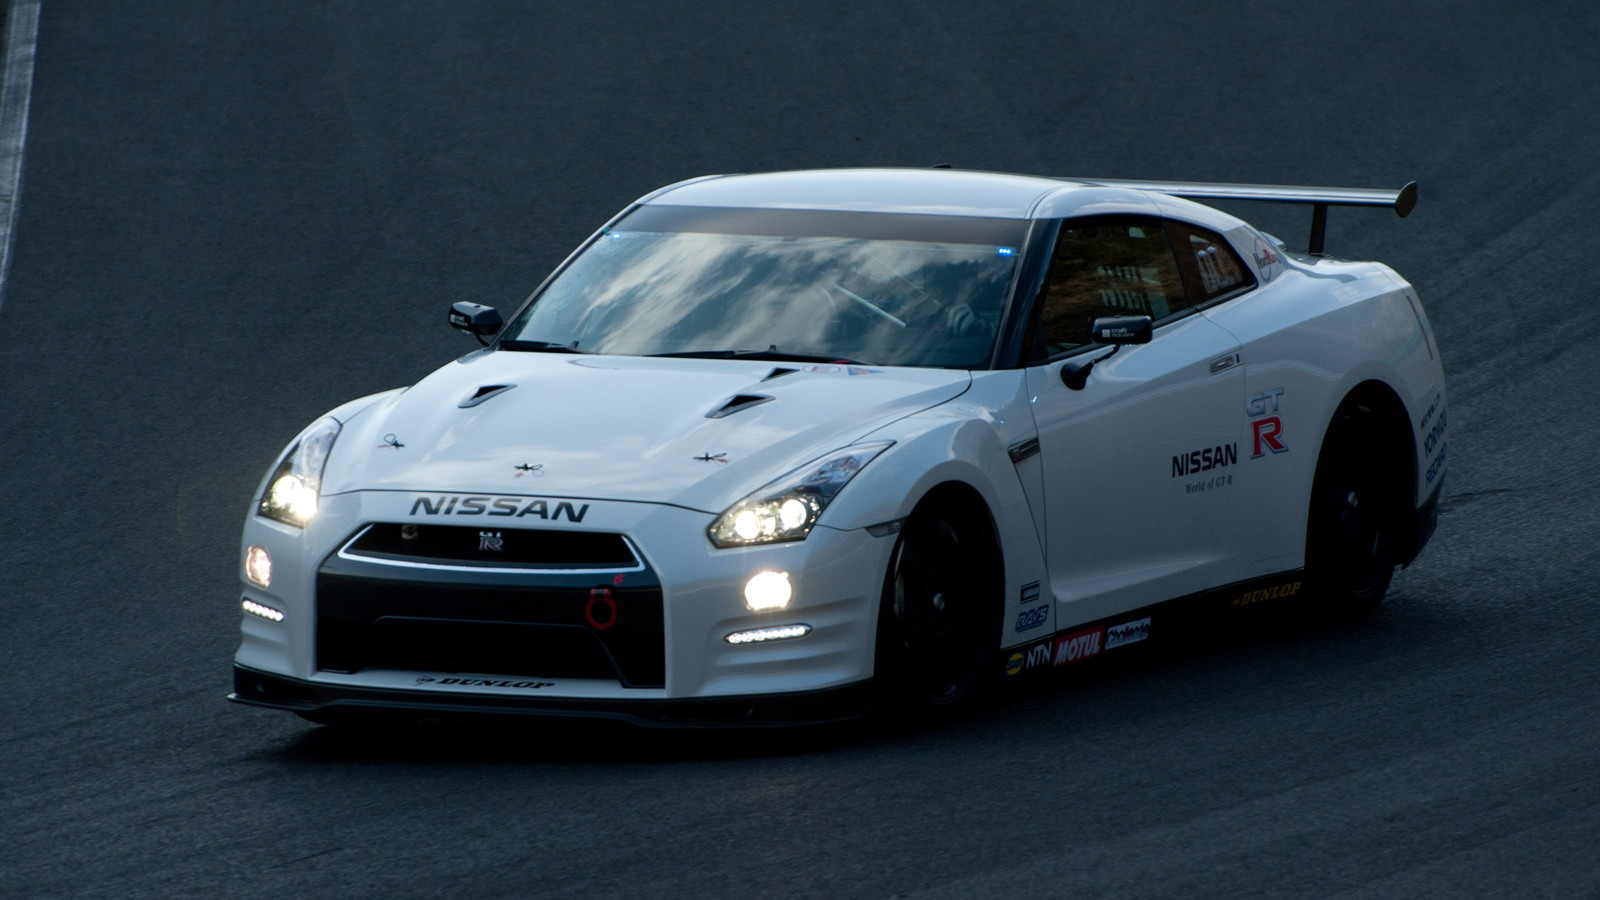 2013 Nissan GT-R (Club Track Edition) entering Nürburgring 24 Hours